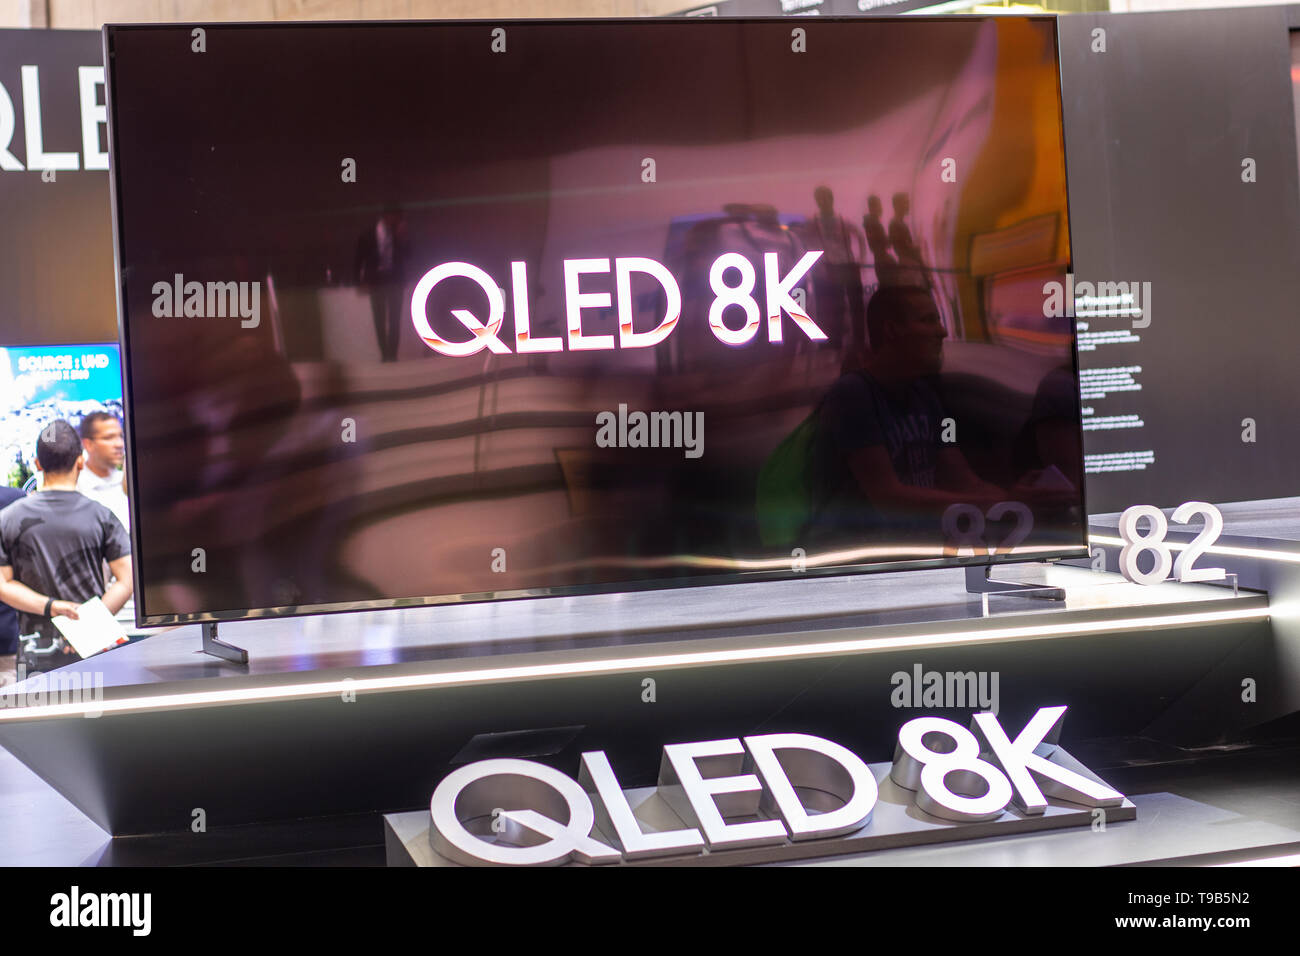 Berlin, Germany, Sep 02, 2018, Samsung QLED 8K HDR 82inch Smart TV on display, Samsung exhibition showroom, stand at Global Innovations Show IFA 2018, - Stock Image